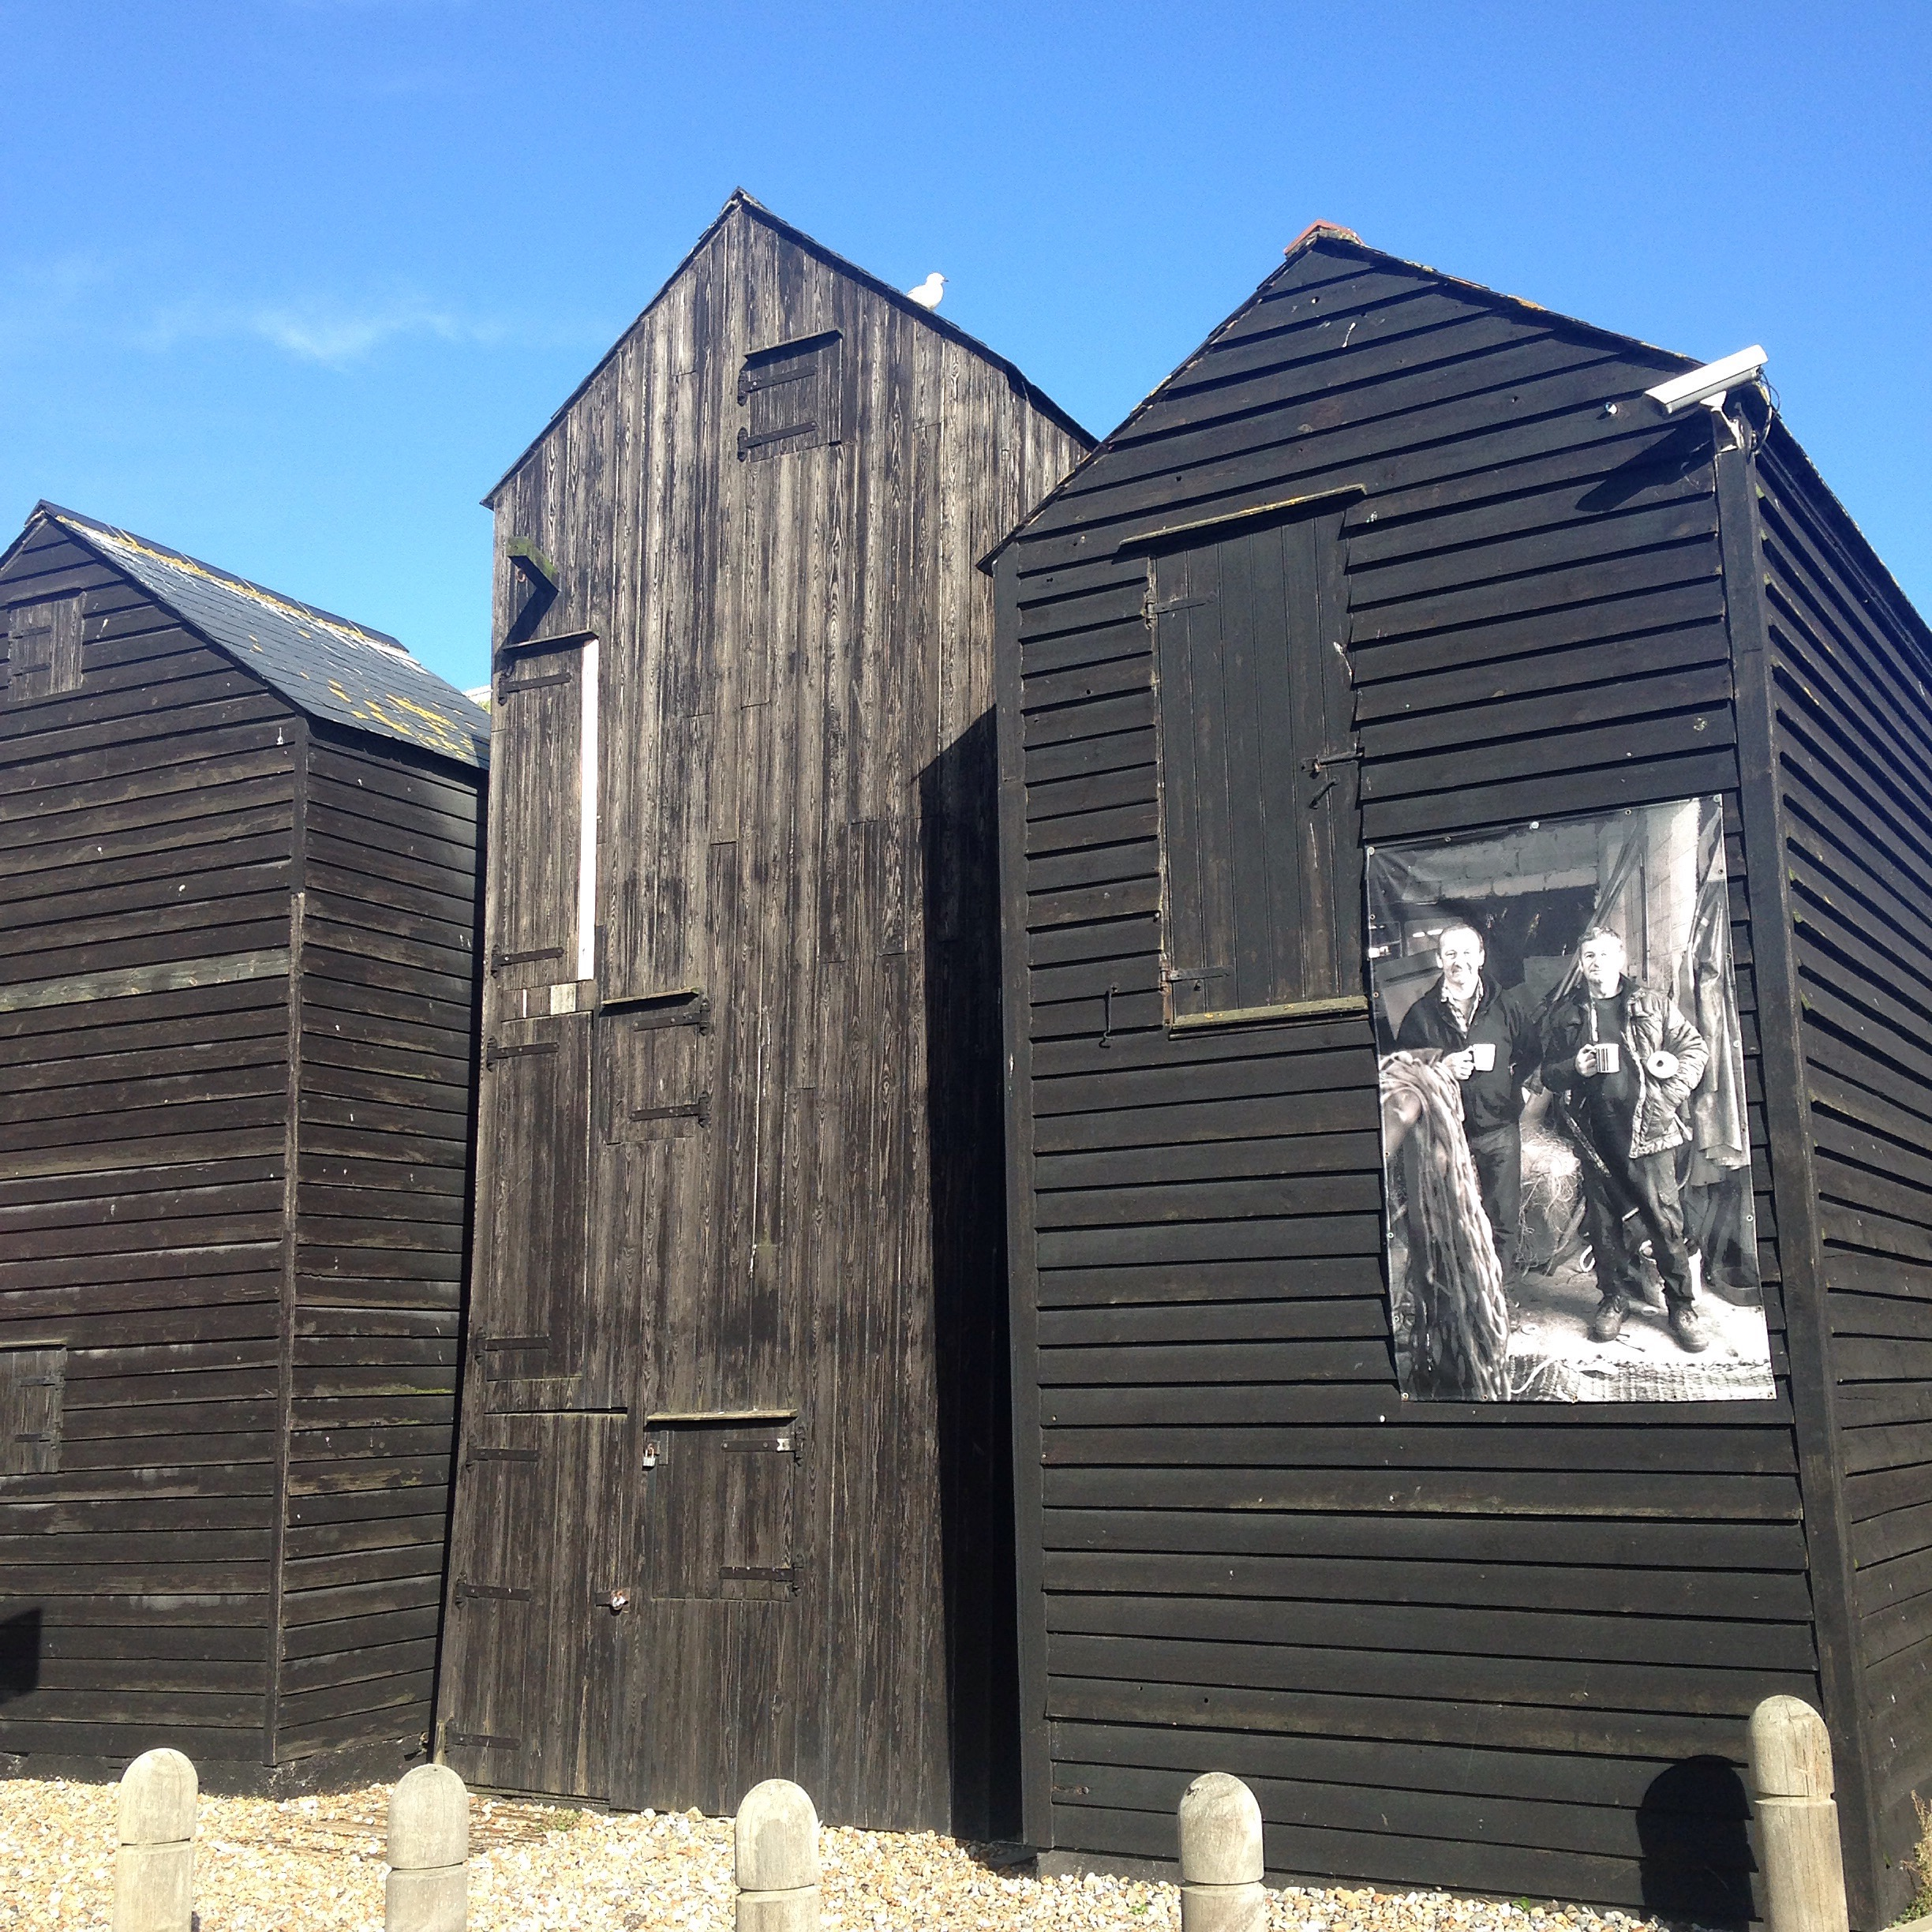 hastings huts.jpg